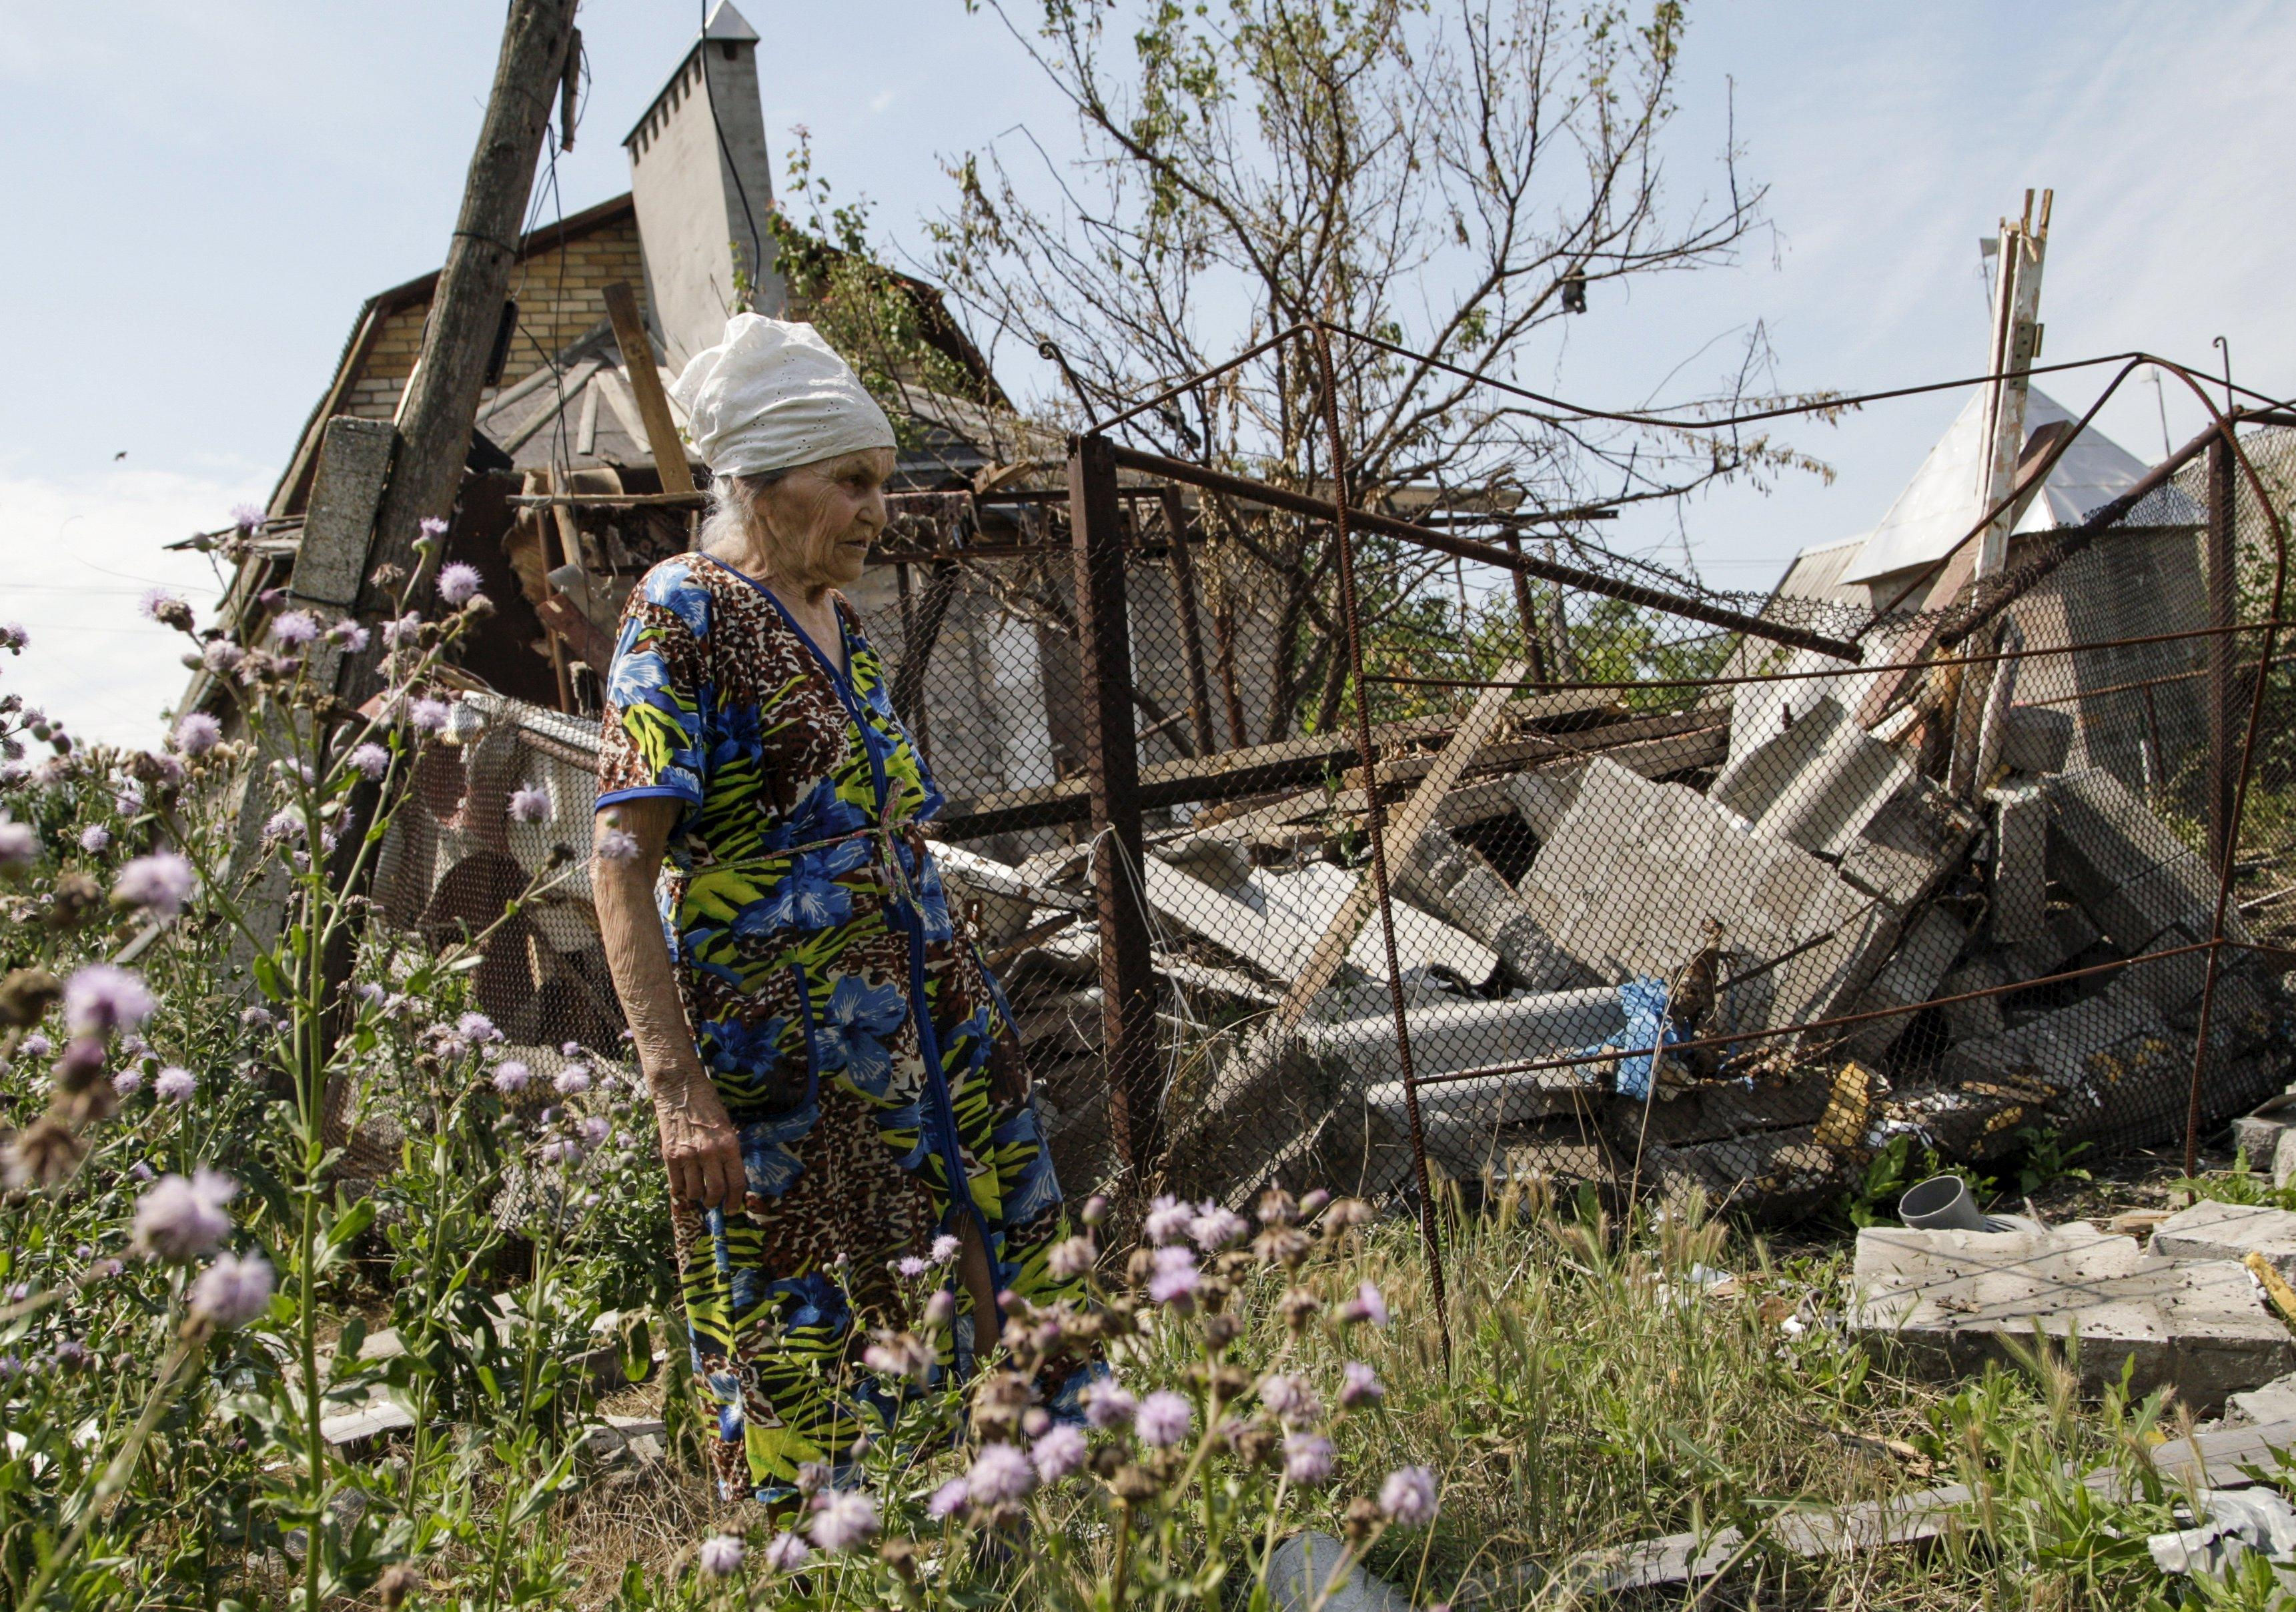 A woman walks past her damaged house, which according to locals was hit by shelling on Wednesday, the village of Sakhanka in Donetsk region, Ukraine, July 2, 2015. REUTERS/Alexander Ermochenko